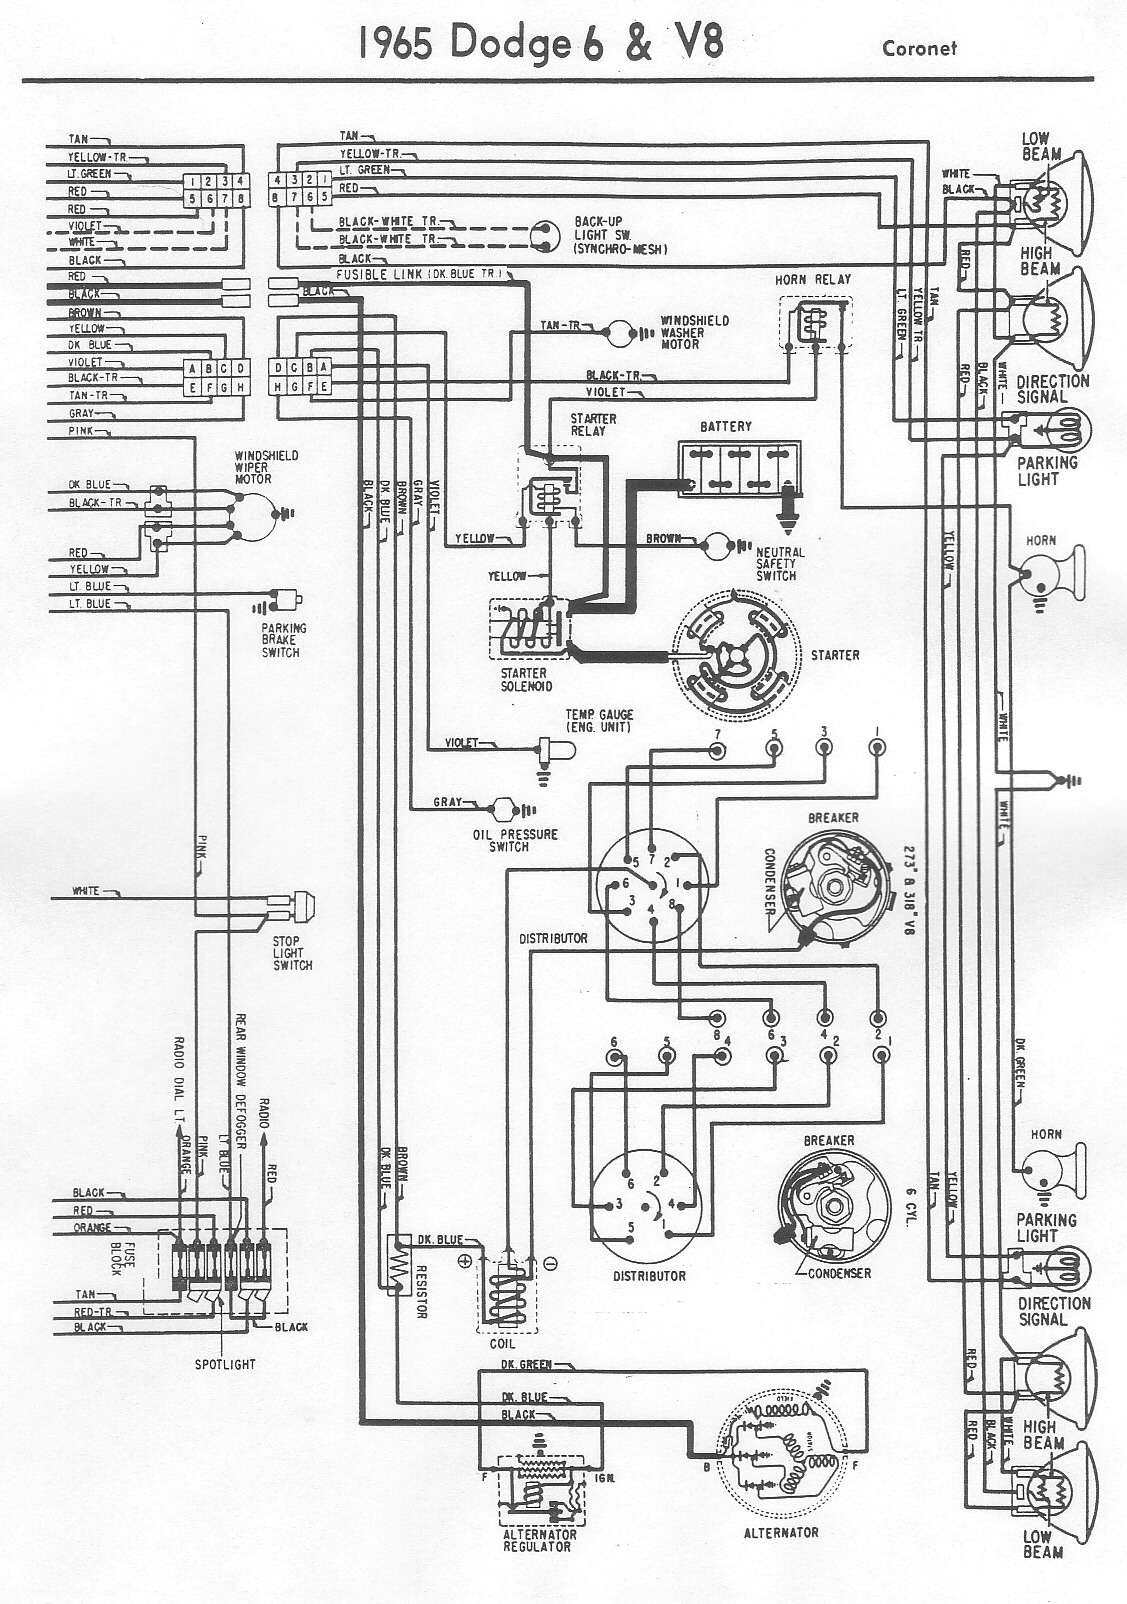 1965 plymouth fury wiring diagram 1965 ford falcon wiring 1962 falcon wiring diagram 1965 ford falcon turn signal wiring diagram [ 1127 x 1604 Pixel ]